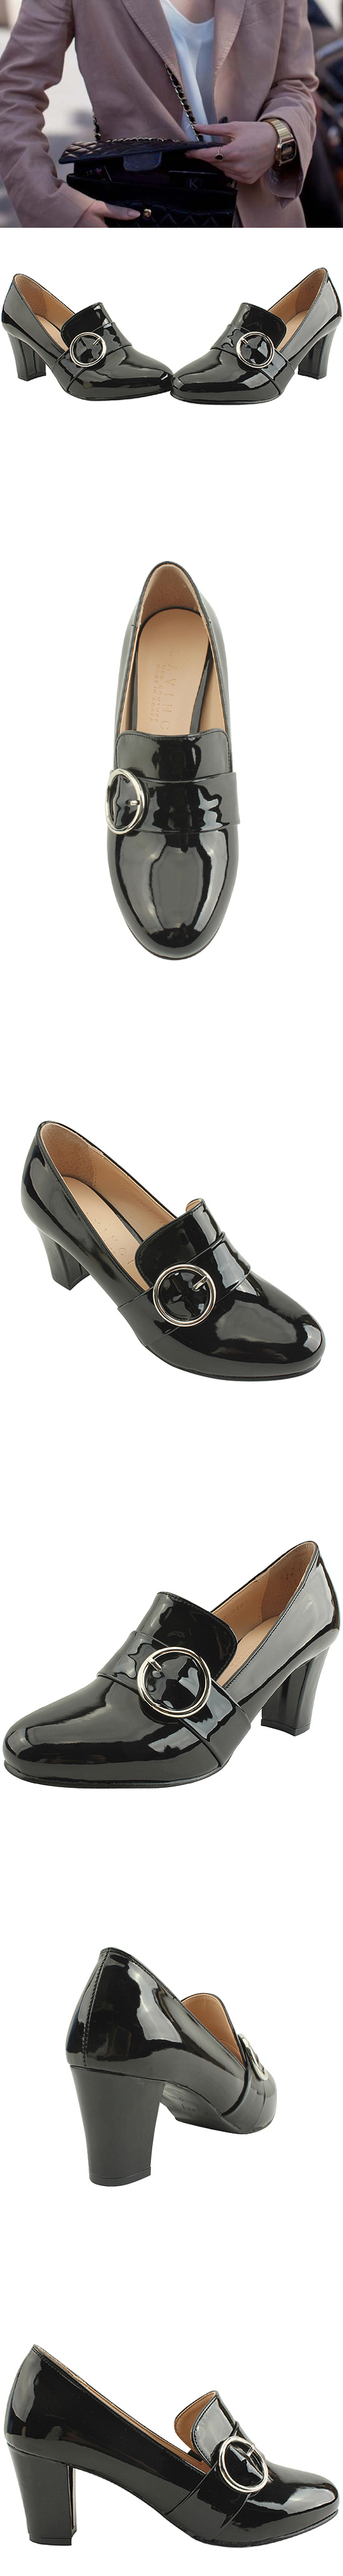 Ring buckle enamel high heel shoes black